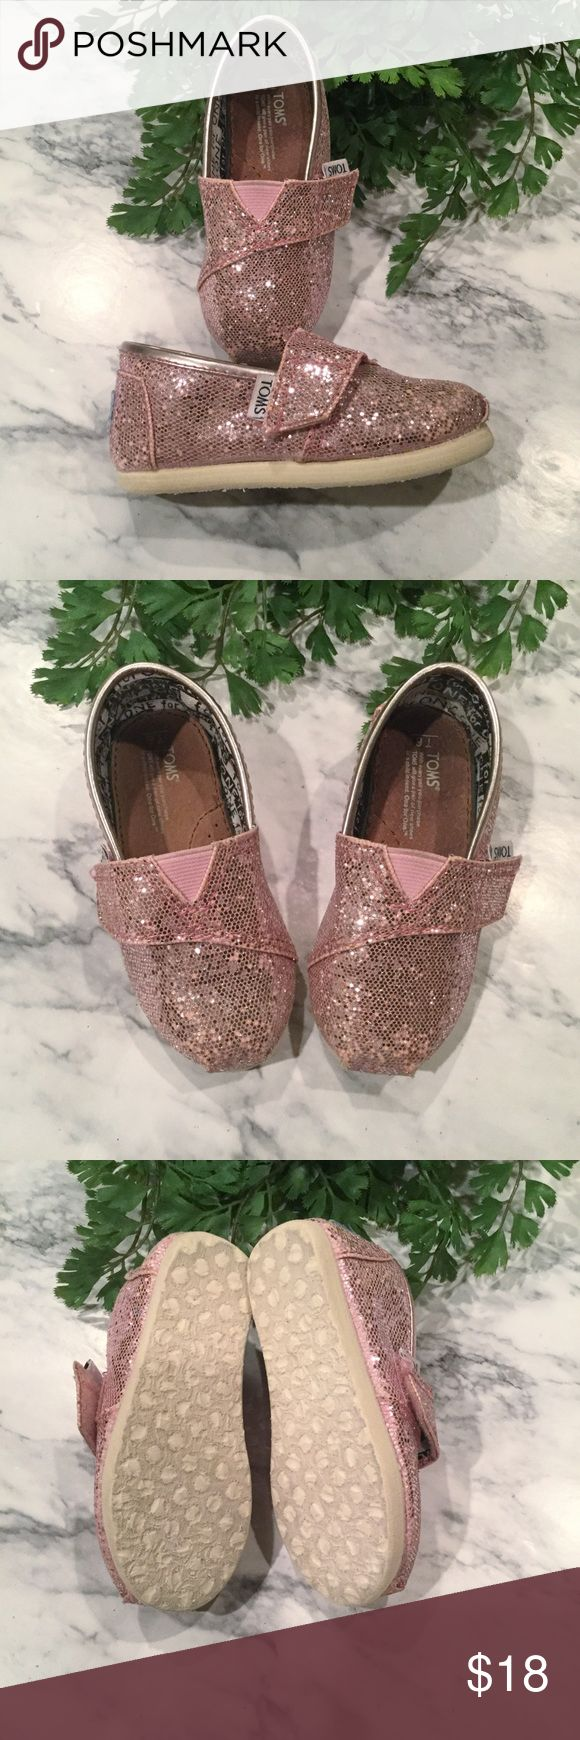 TINY TOMS Pink Glitter Toddler Shoes Slip On T6 6 🍃🍃🍃🍃🍃🍃🍃🍃🍃🍃🍃🍃  Tiny Toms pink glittery toddler size T6 or 6. Perfect for your little princess. 🌸🌸🌸 Freshly washed and ready to go. Velcro closure. Photos show condition. I have another pair of Toms in another listing if you would like to bundle them together, save 20% and pay only one shipping fee.    💕🍃💕 Offers welcome 💕🍃💕 Toms Shoes